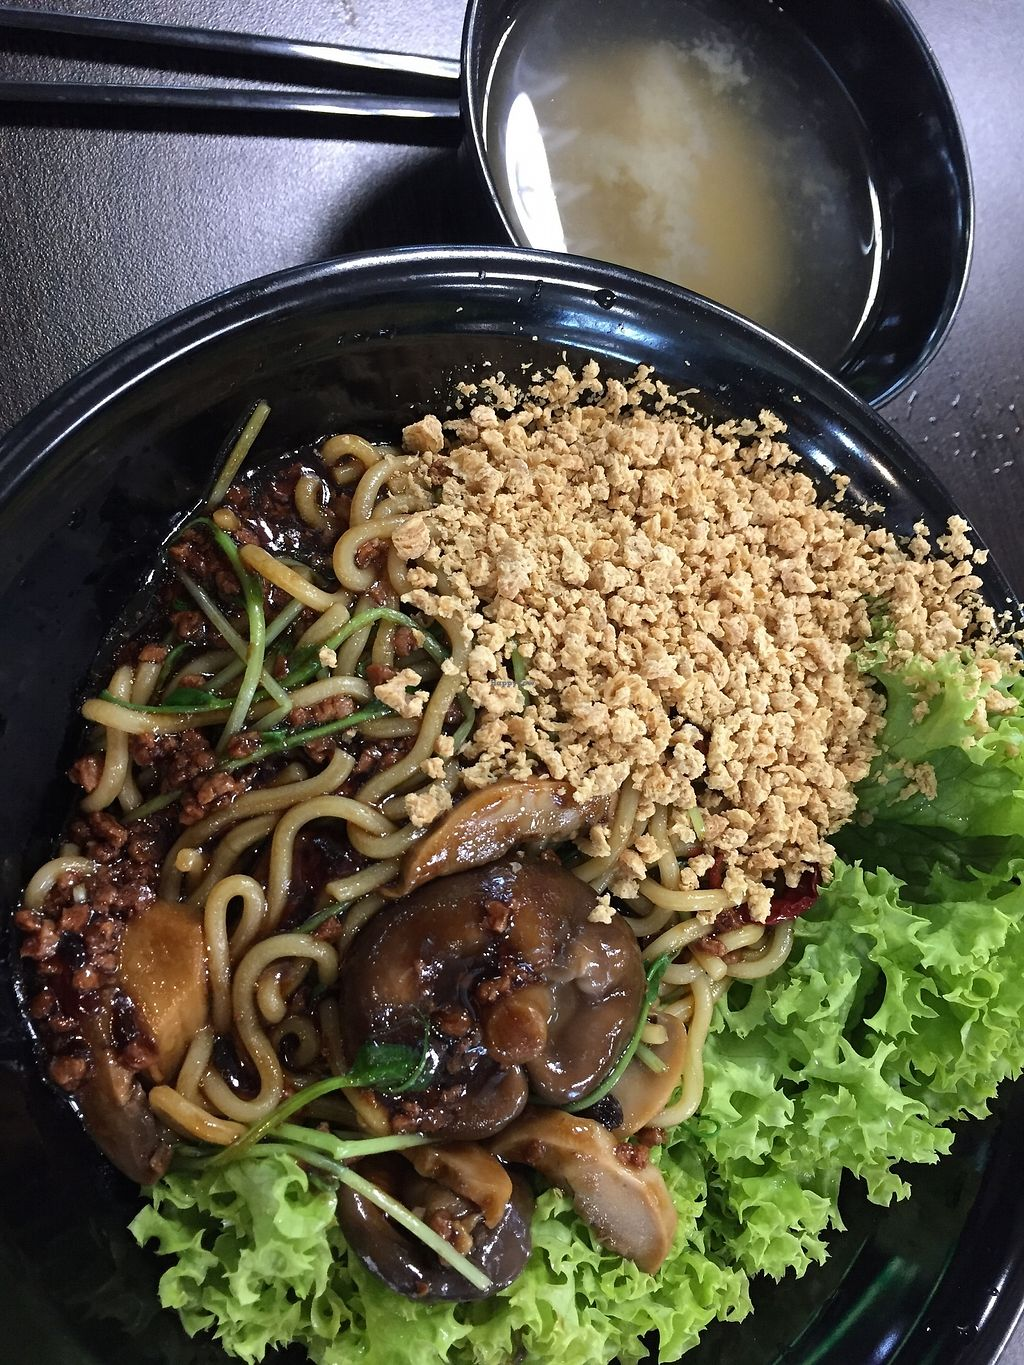 """Photo of CLOSED: Vegandeli  by <a href=""""/members/profile/lindyhan"""">lindyhan</a> <br/>Minced bean ramen $6.9 - noodles with thick sauce, grounded peanuts, lettuce, """"minced meat"""", mushrooms and a soup by the side. Before mixing <br/> August 8, 2017  - <a href='/contact/abuse/image/80167/290335'>Report</a>"""